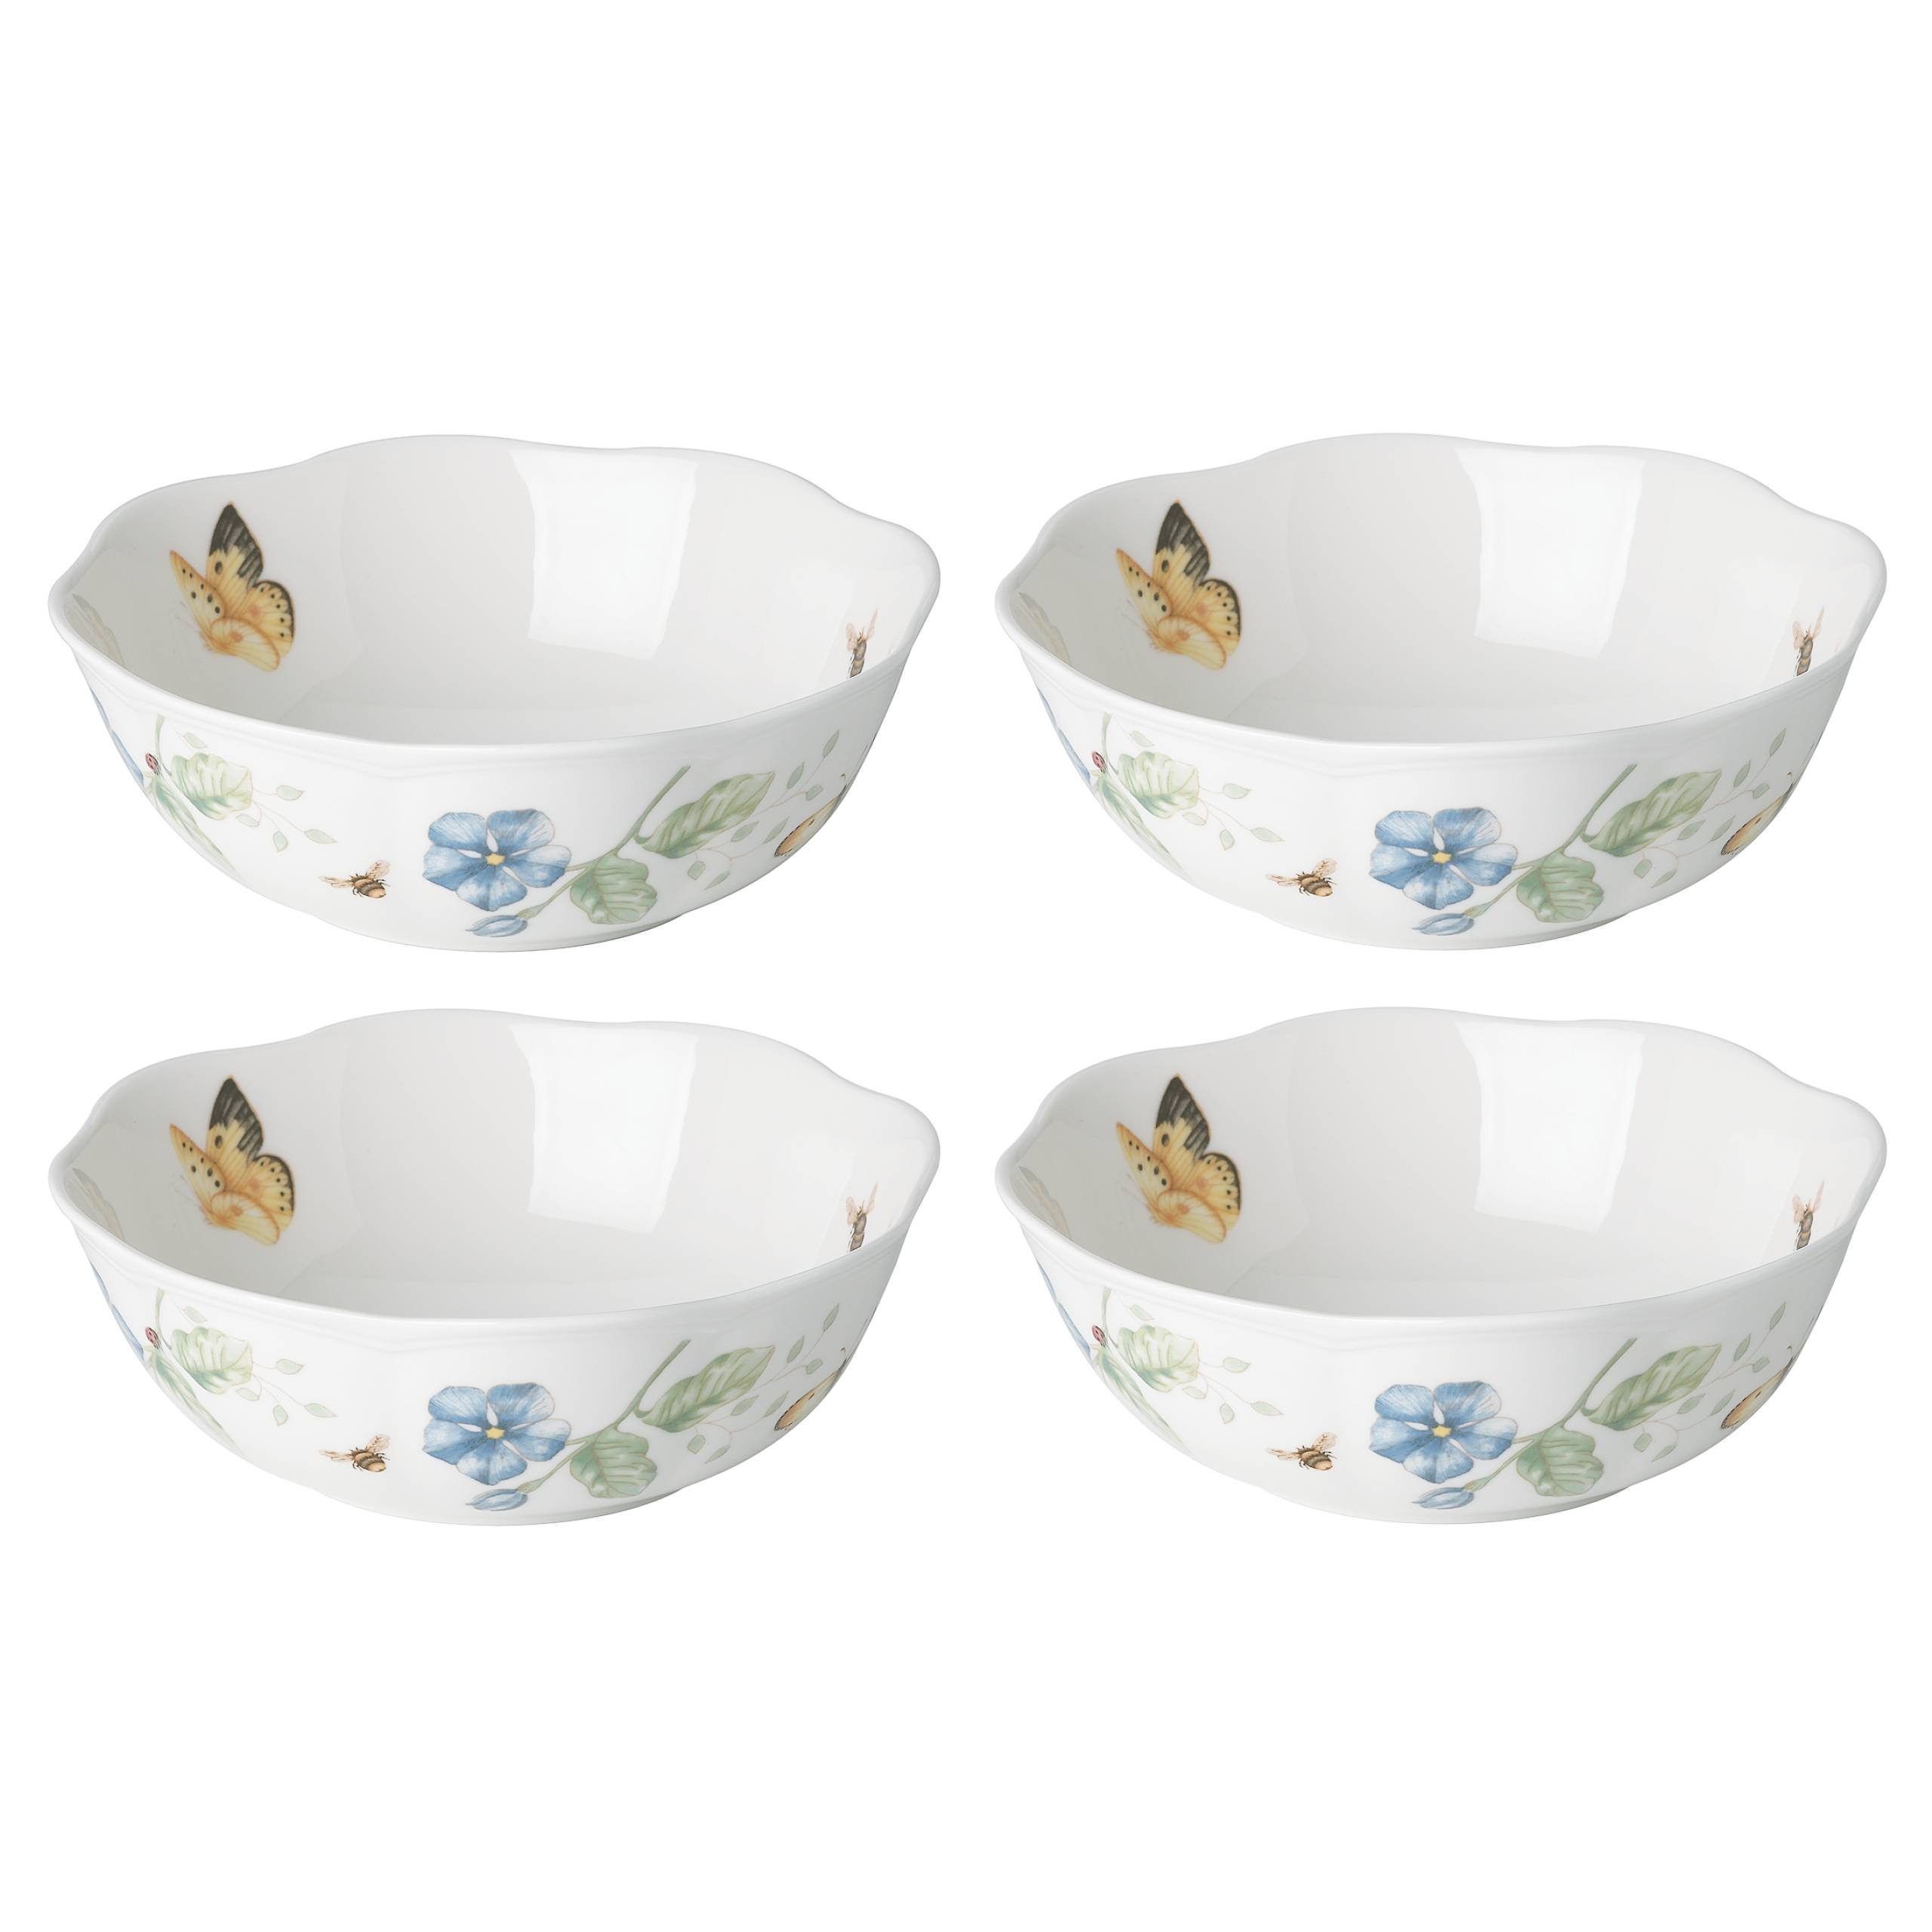 Lenox 880121 Butterfly Meadow All All Purpose Bowls (Set of 4), 20 oz, Multicolor